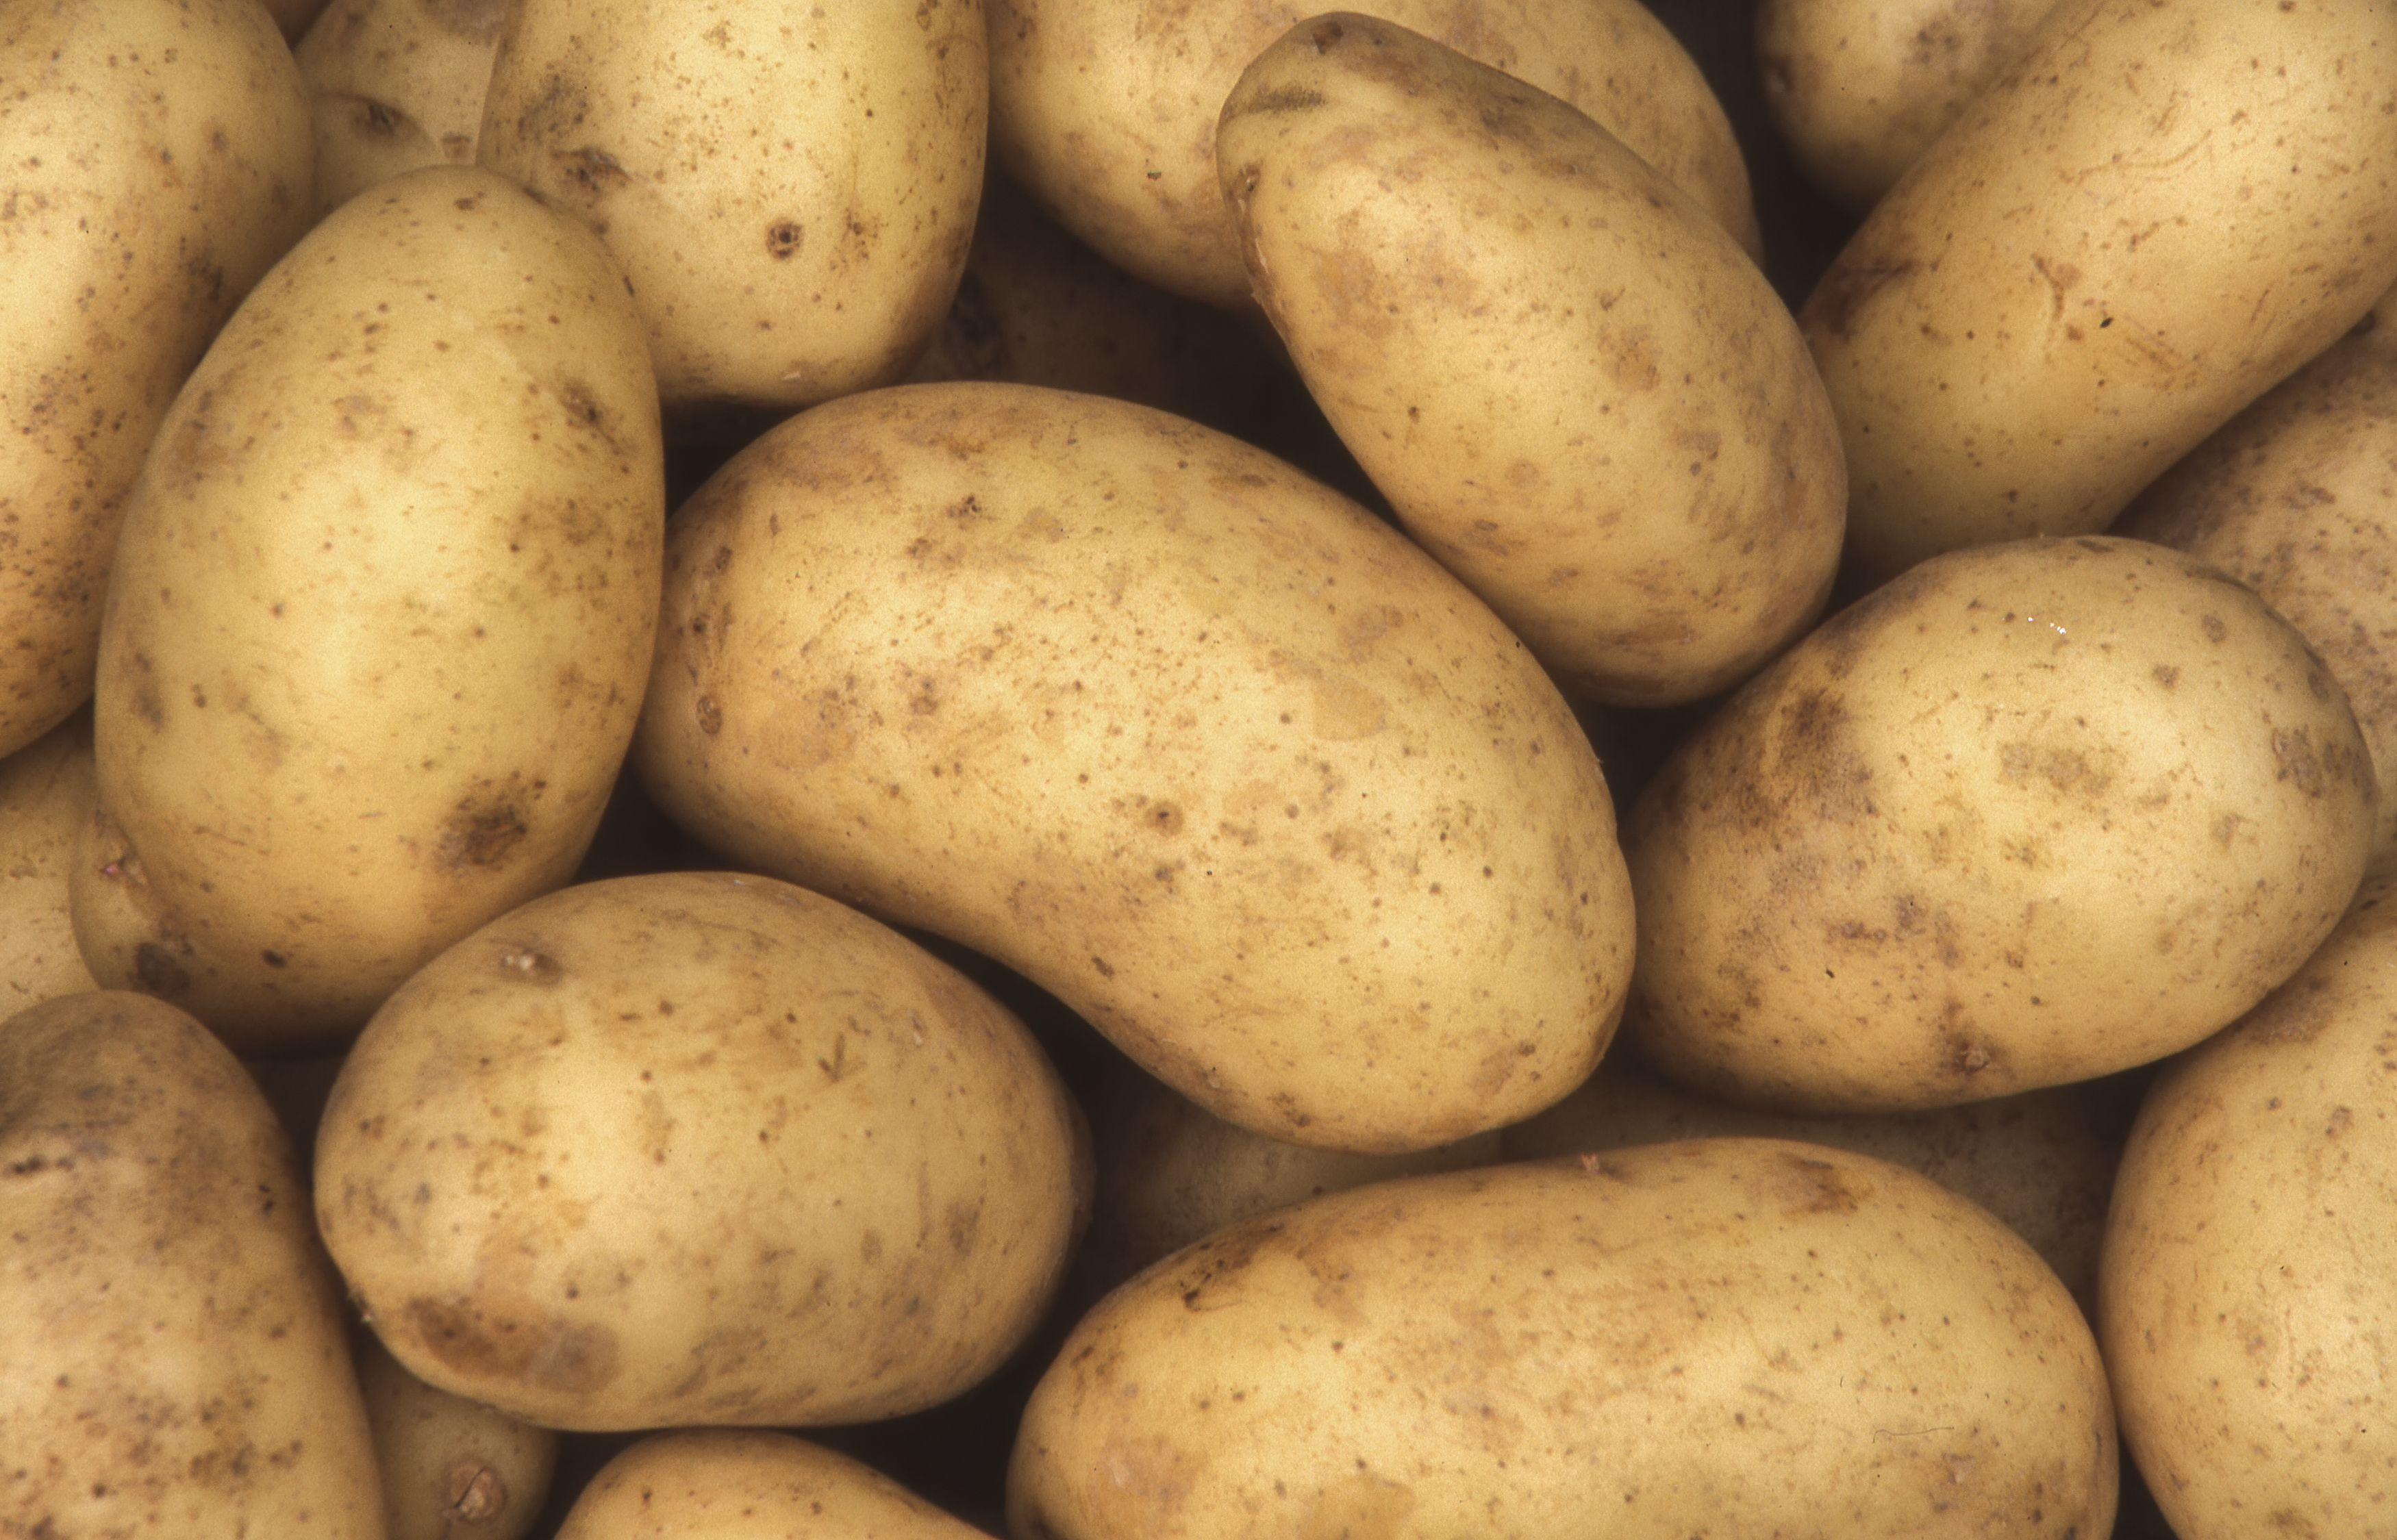 image frame is filled with large, white potatoes!